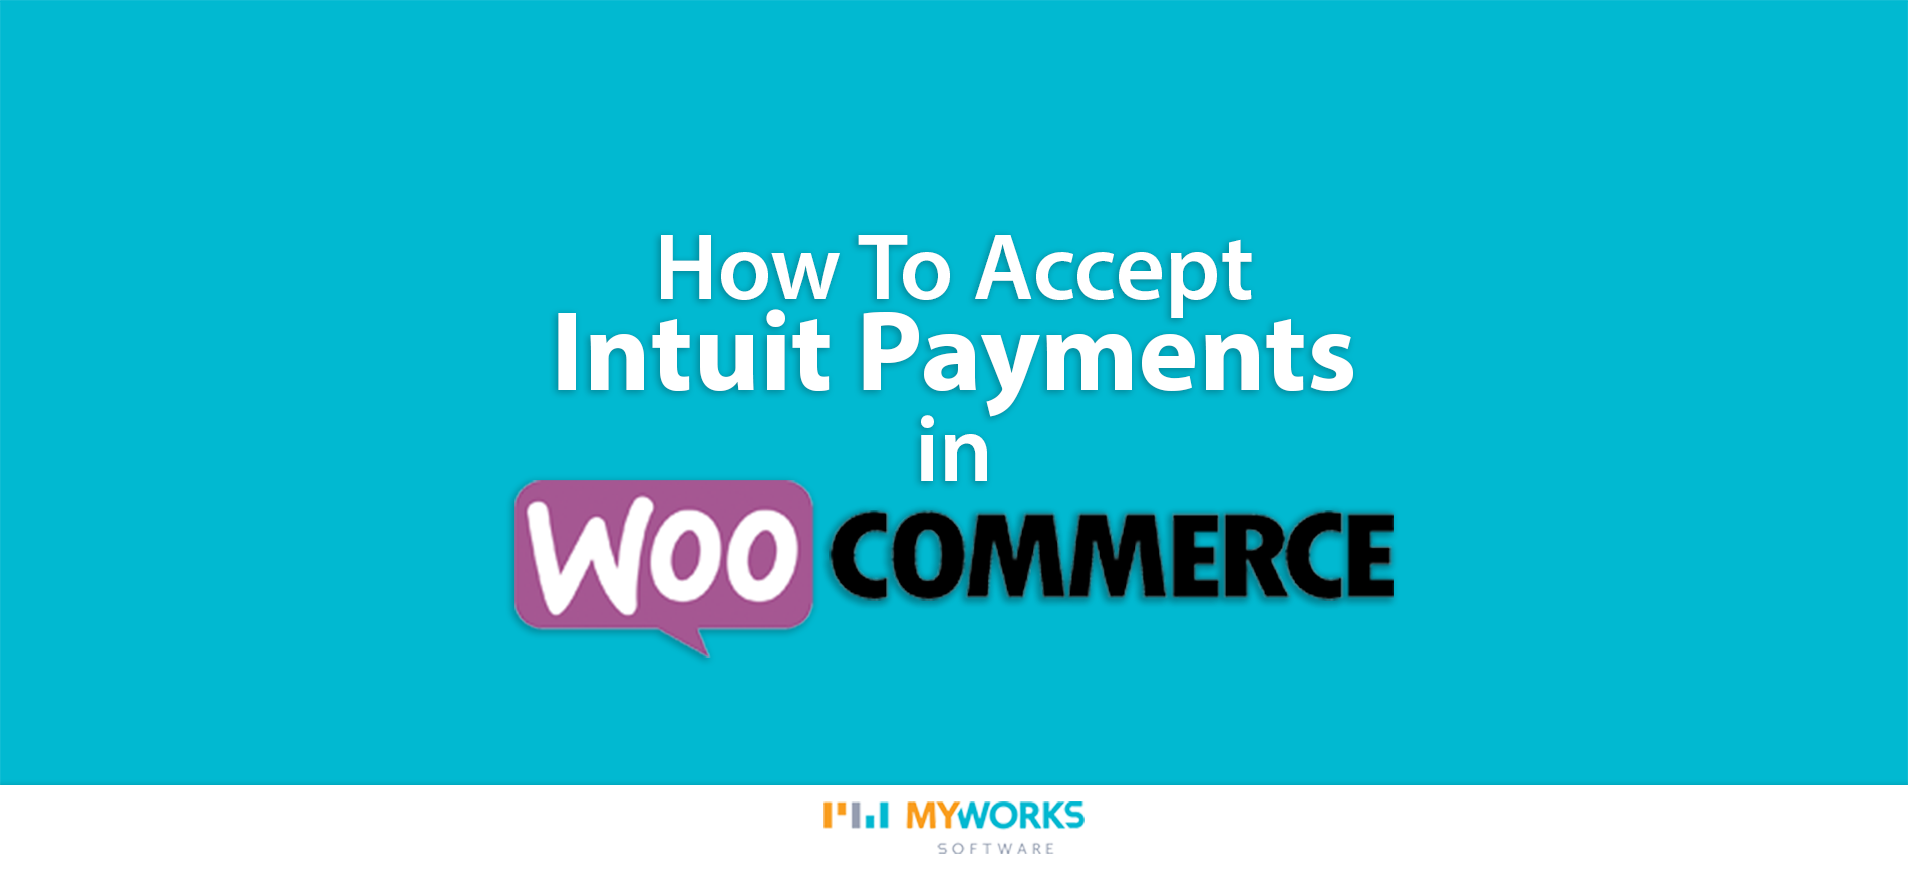 How to accept Intuit Payments in WooCommerce